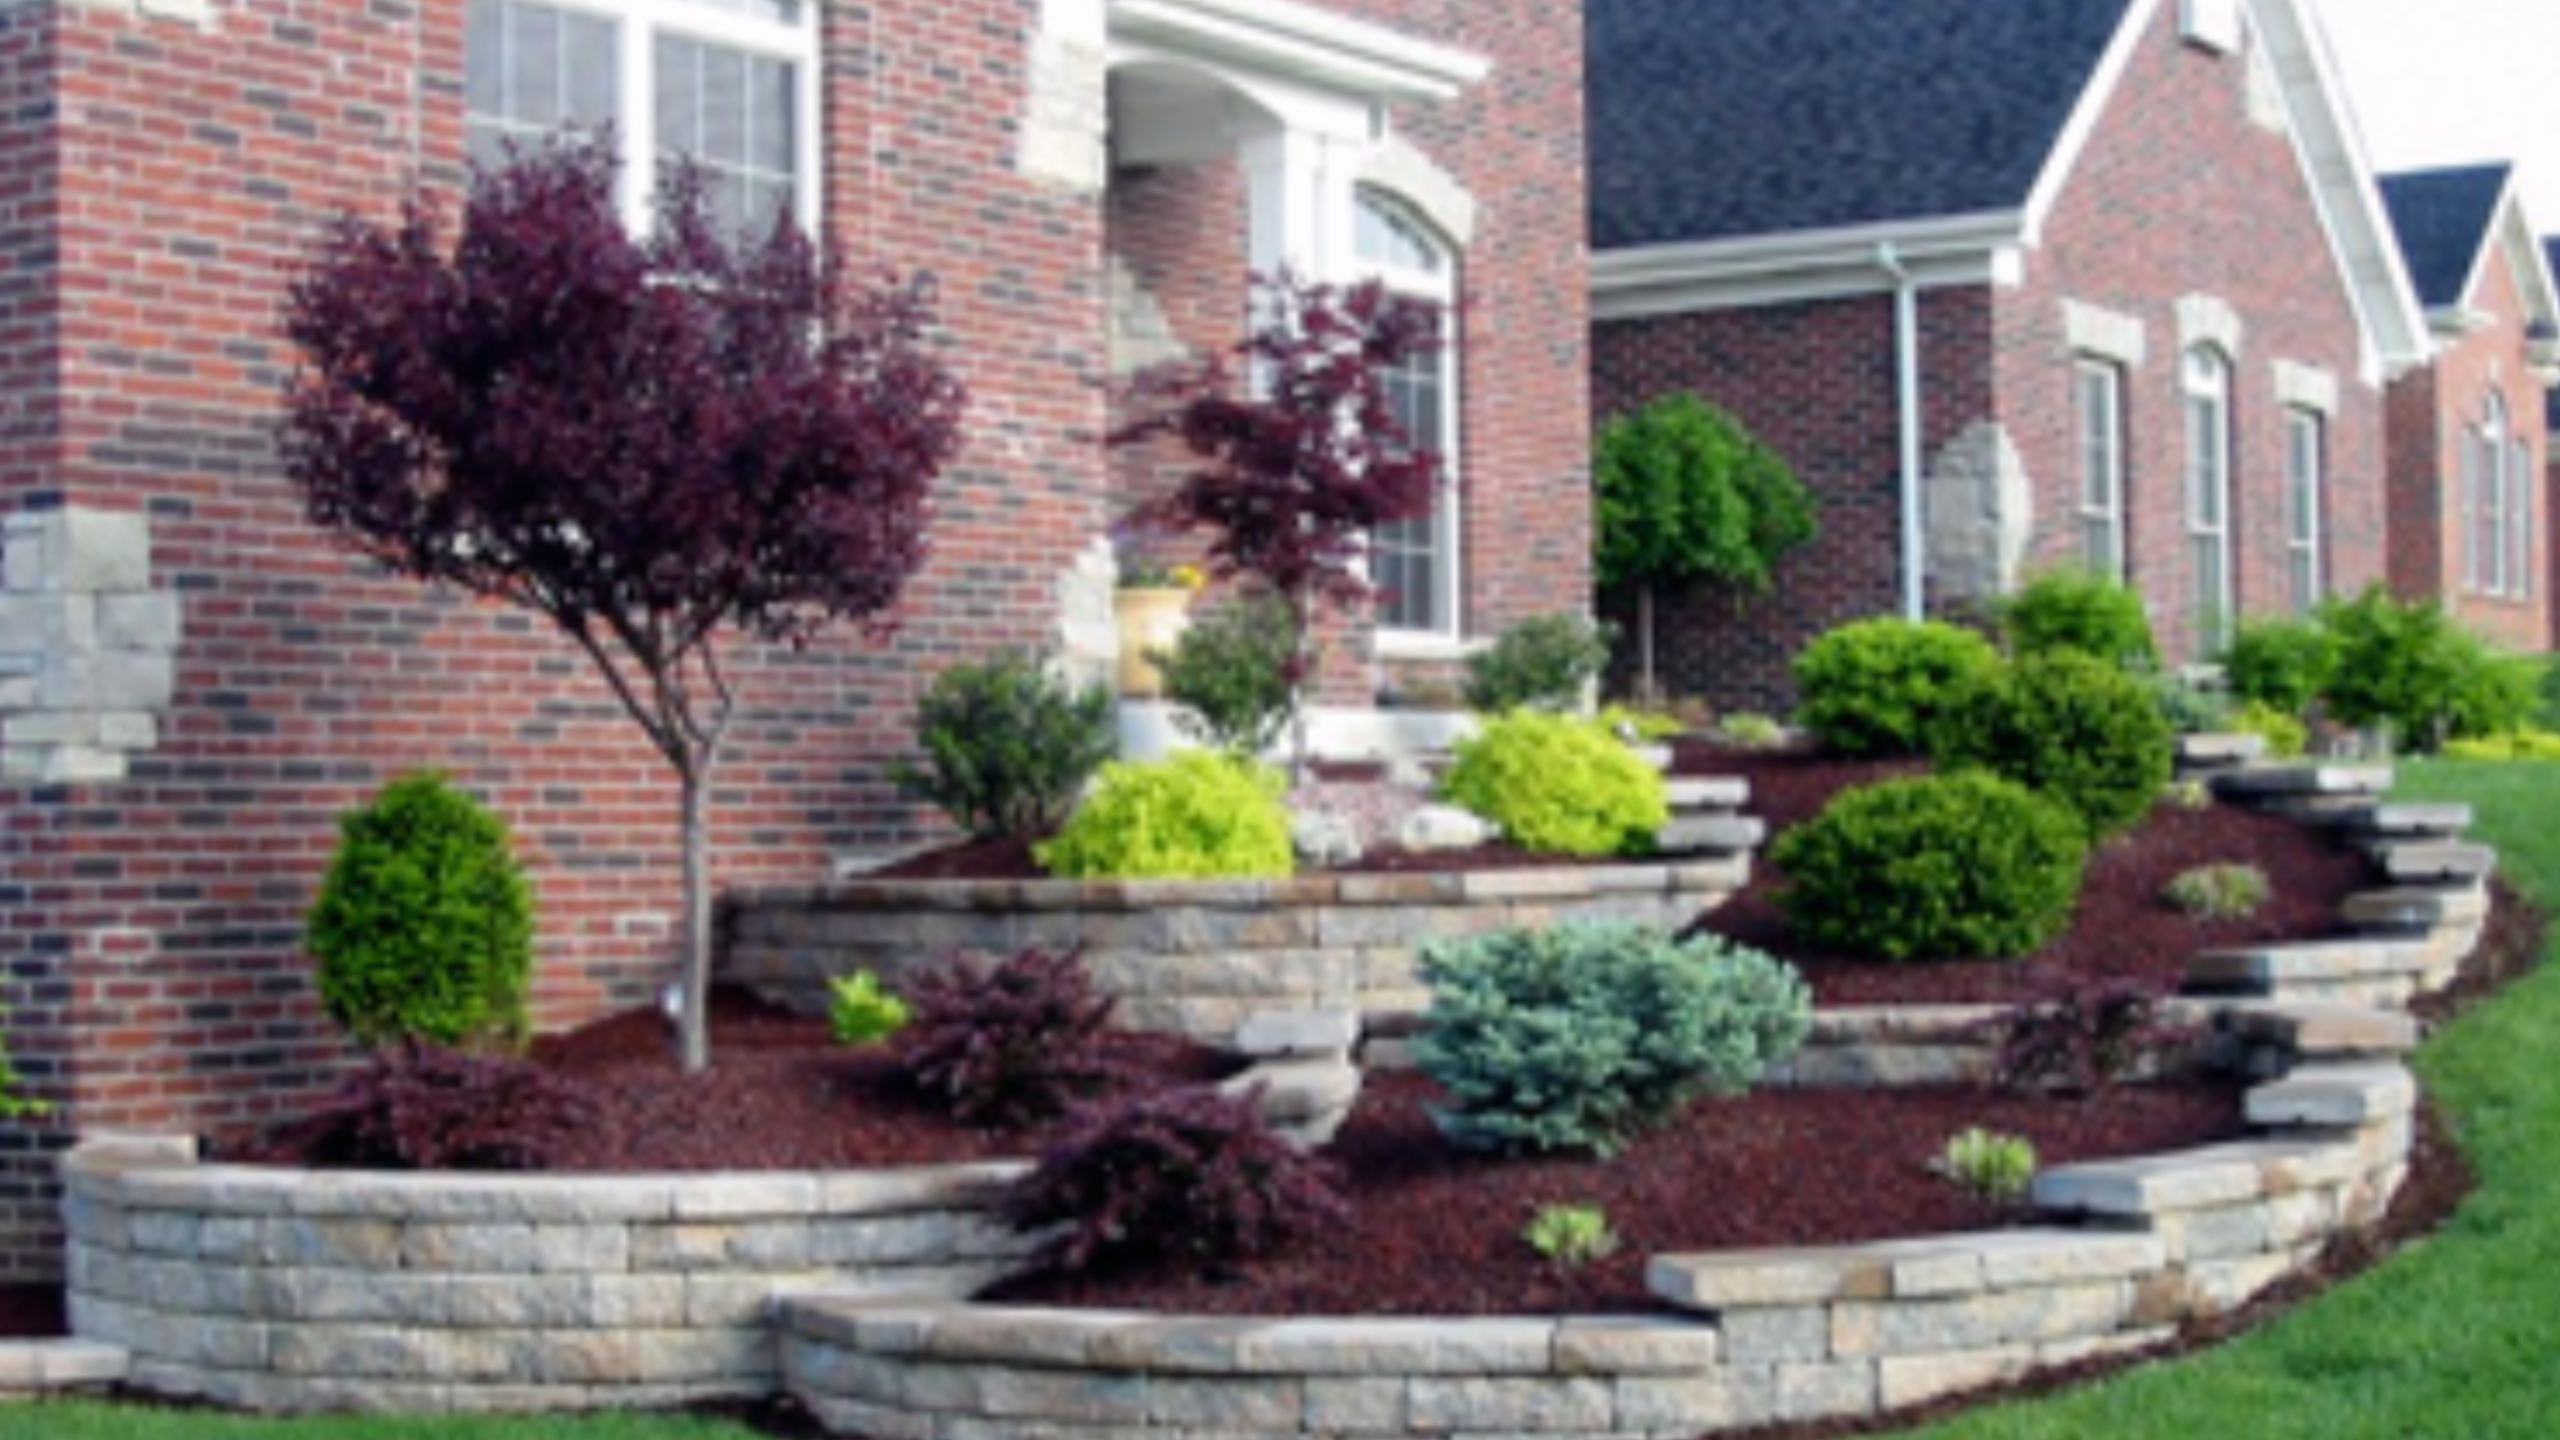 Ocd lawn care plus in jacksonville fl 32246 for Landscaping rocks in jacksonville fl